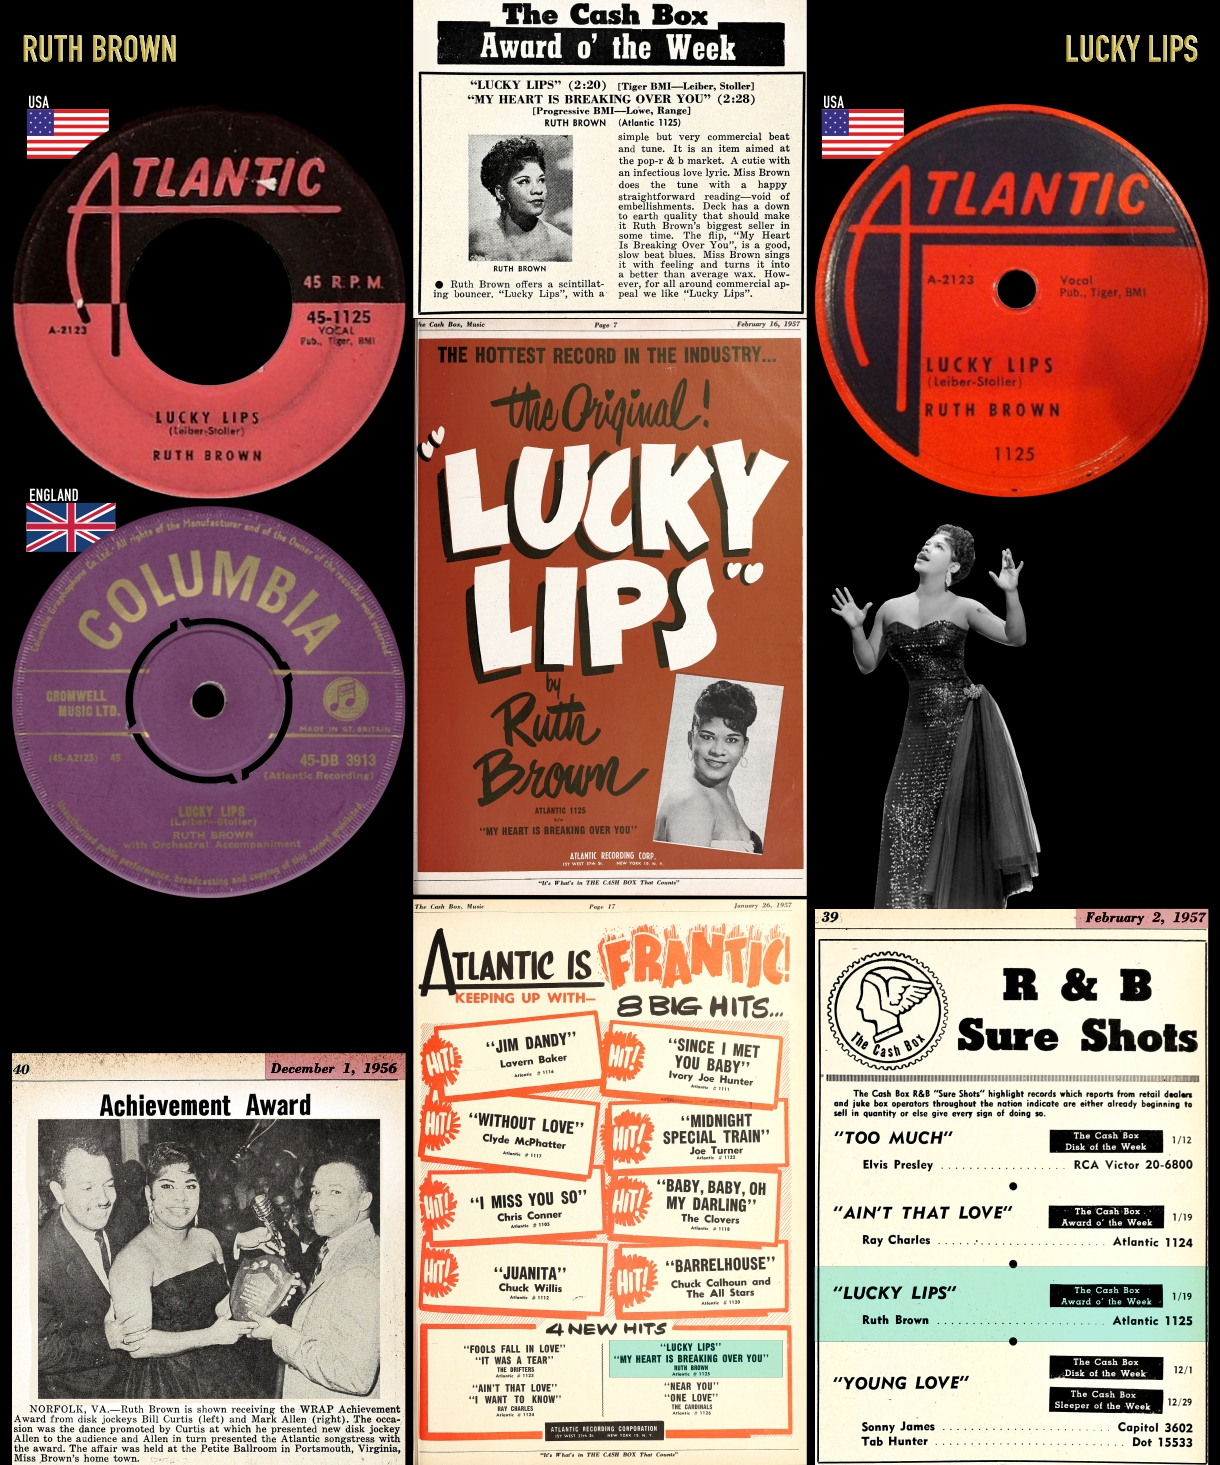 570223_Ruth Brown_Lucky Lips